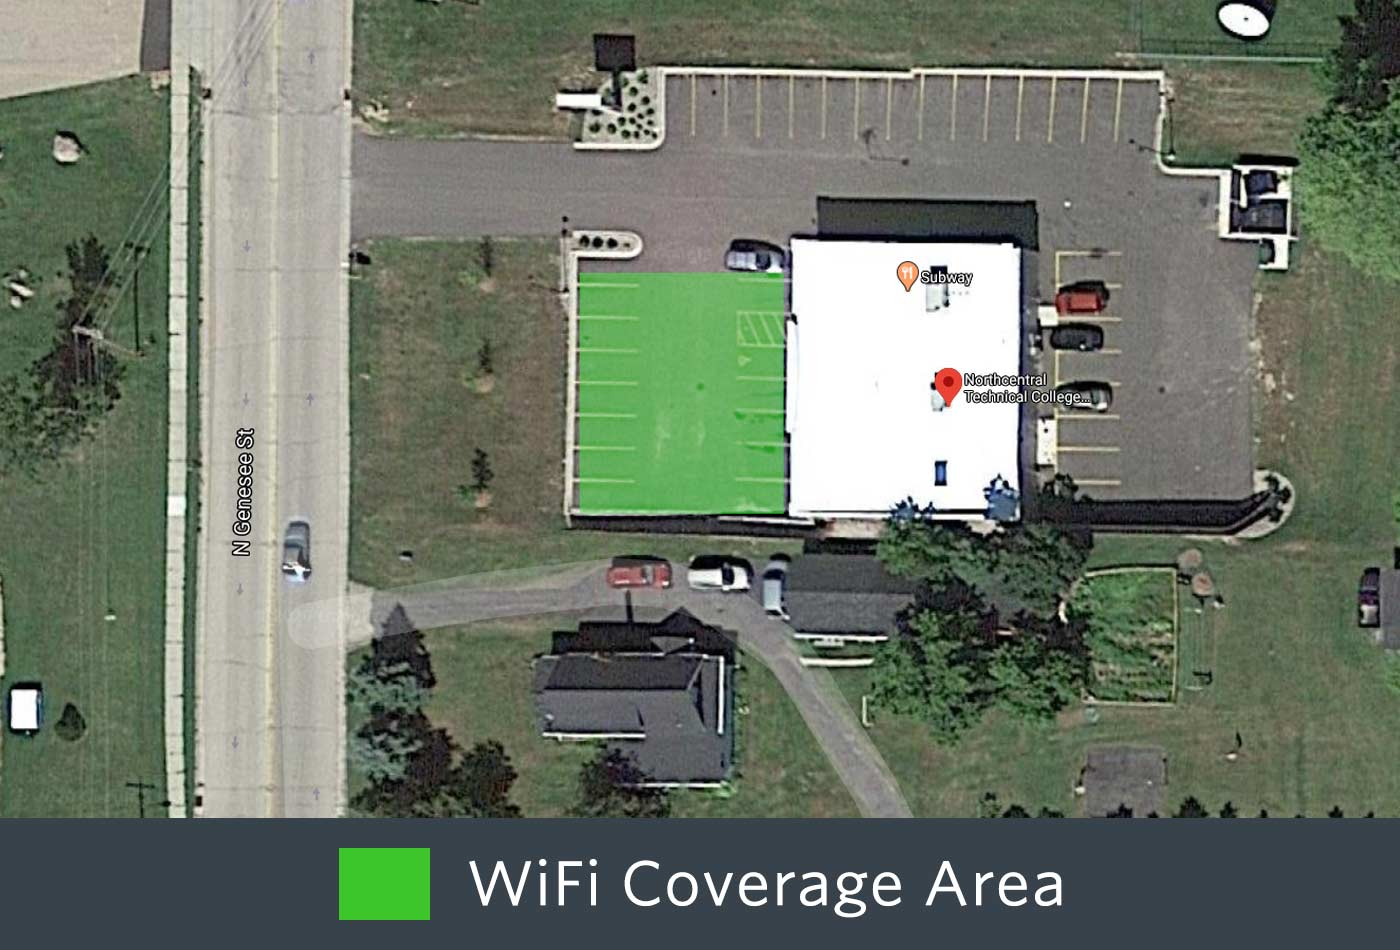 Outdoor WiFi coverage of the front of the Wittenberg Campus